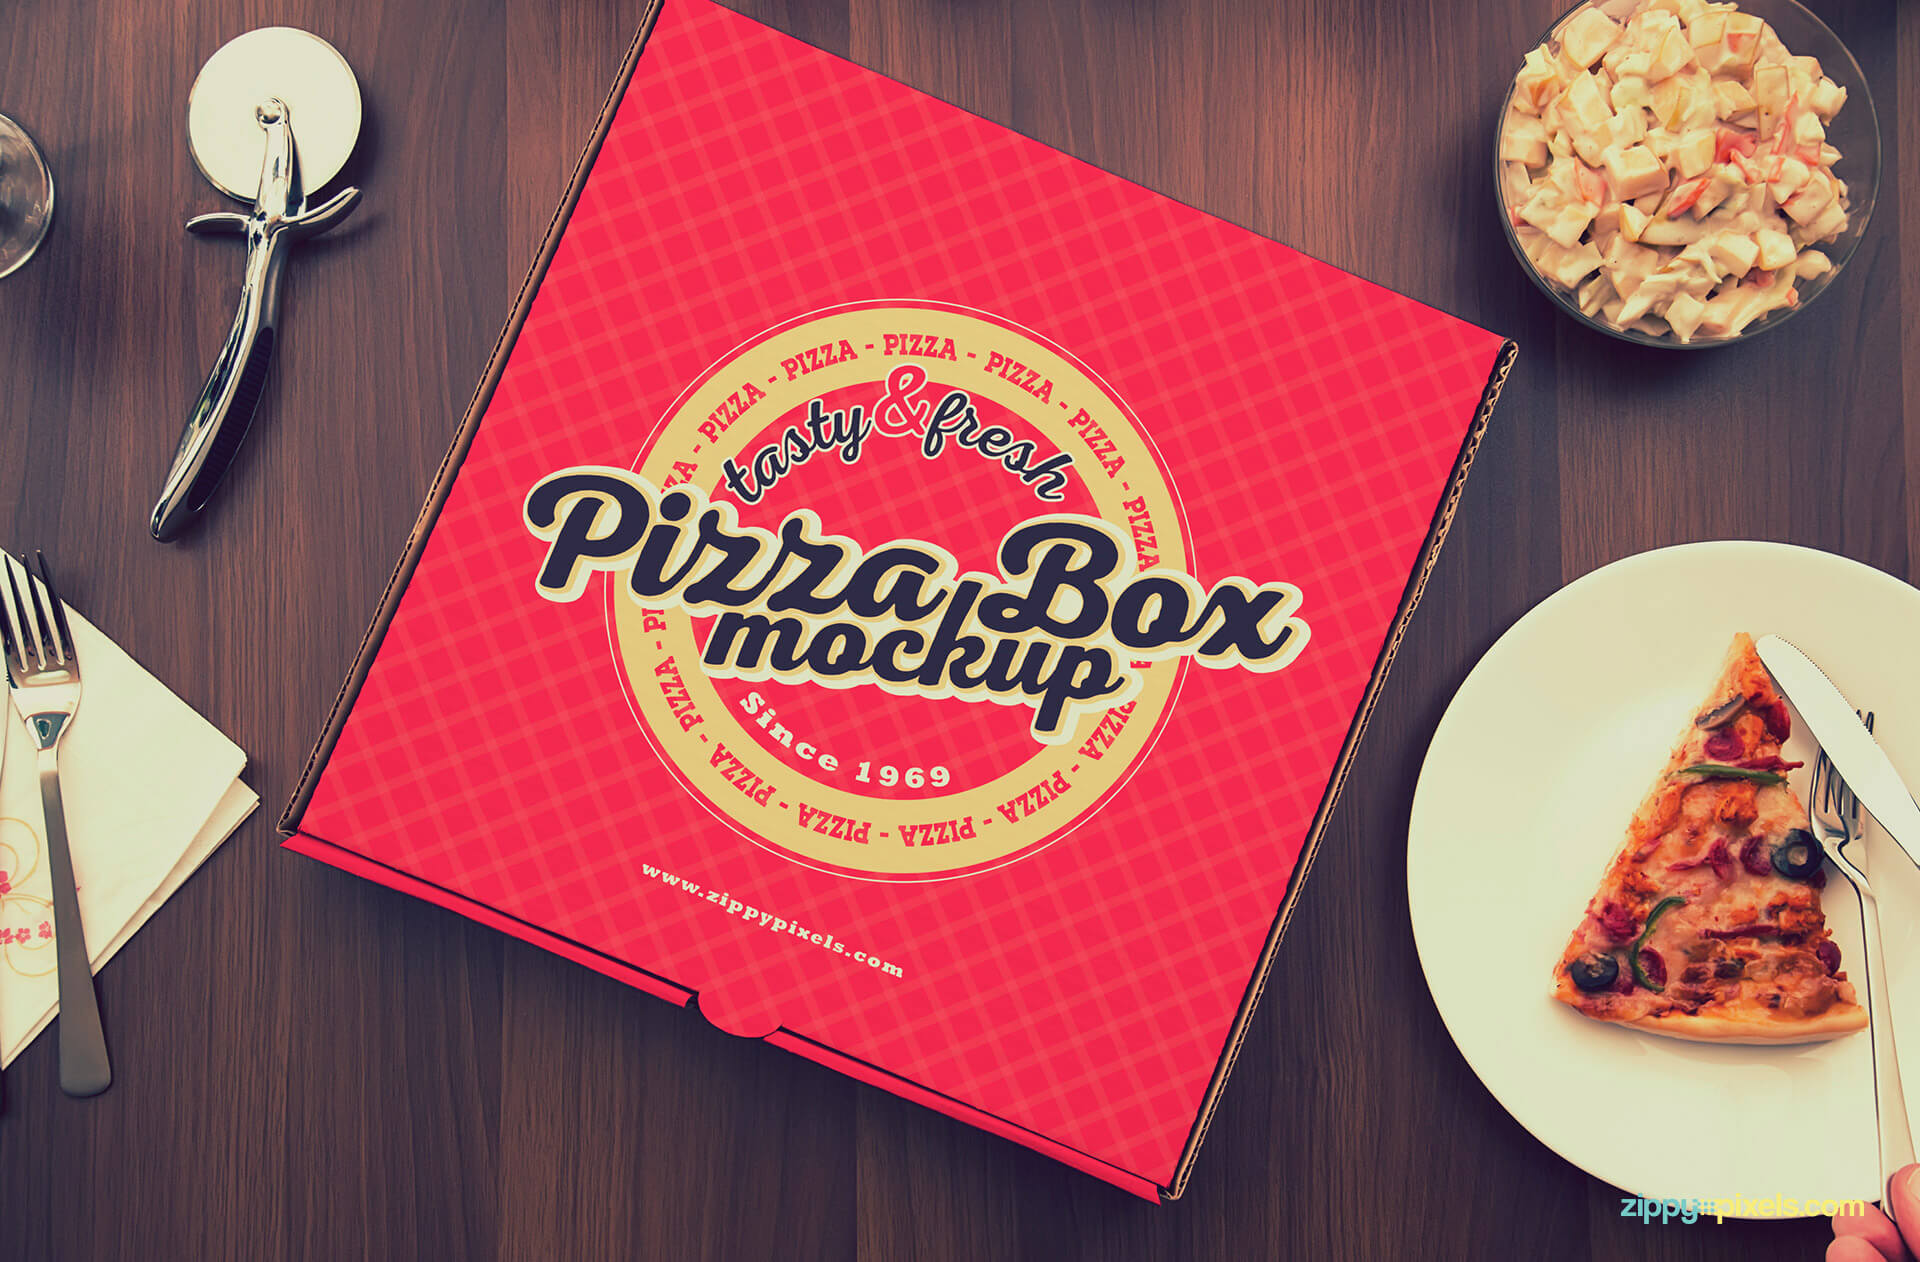 Box packaging mockup design for pizzas.